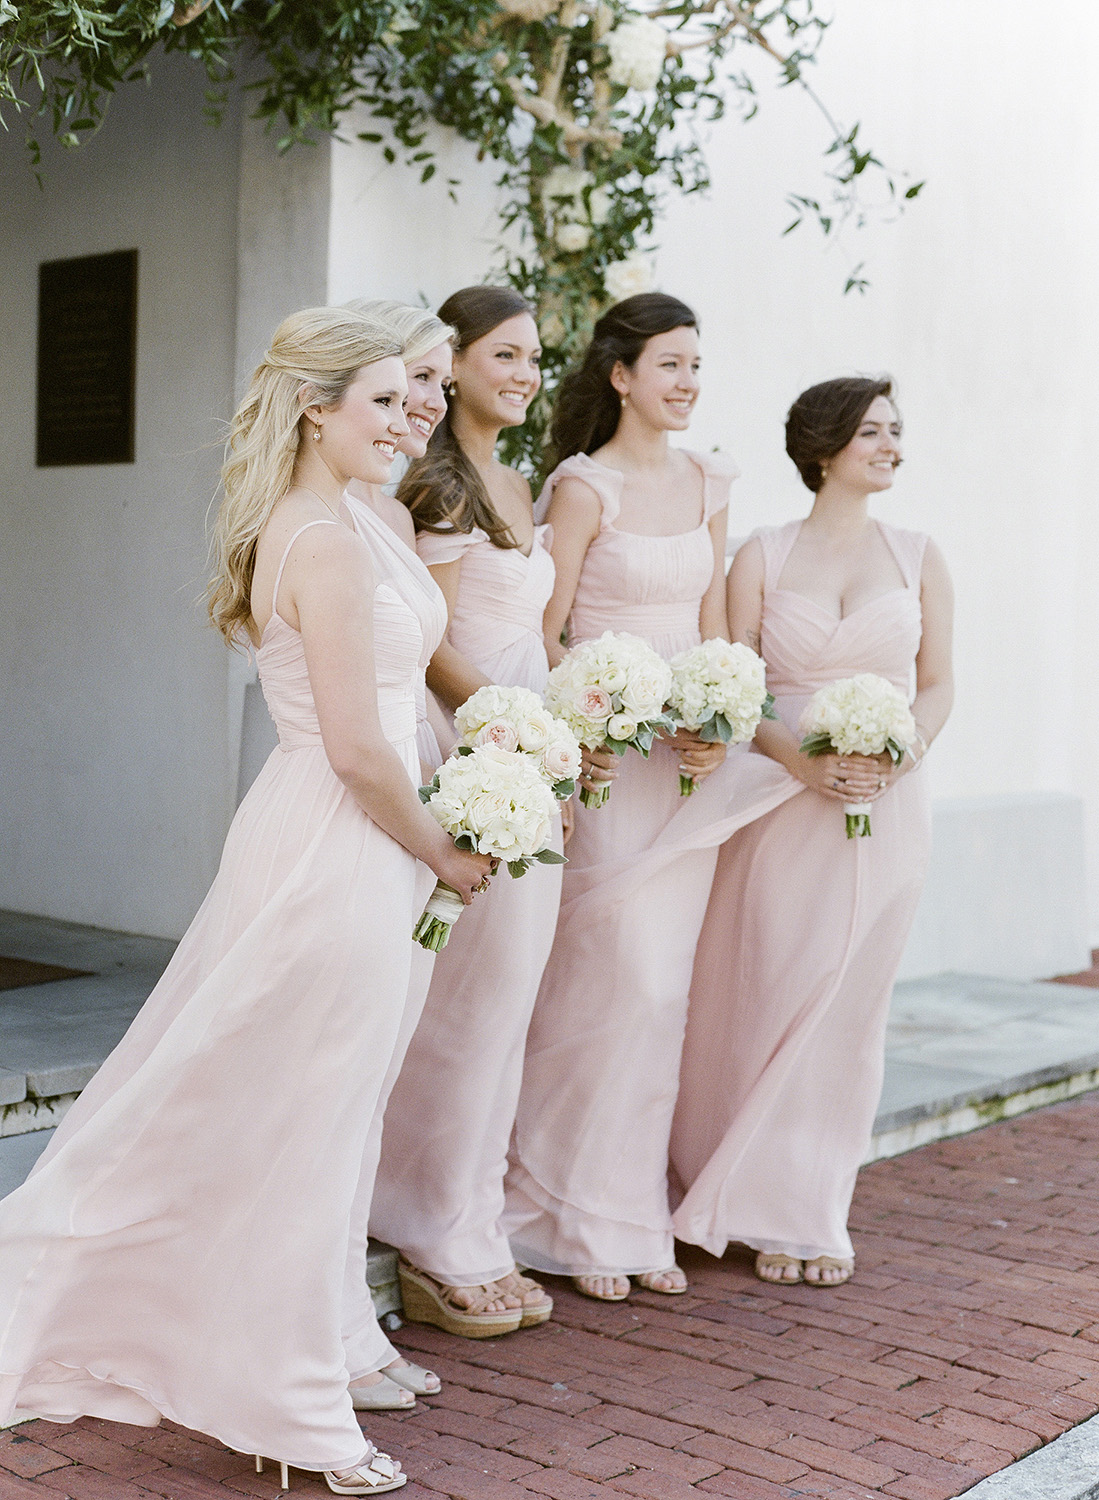 rosemary-beach-wedding-leslee-mitchell.jpg